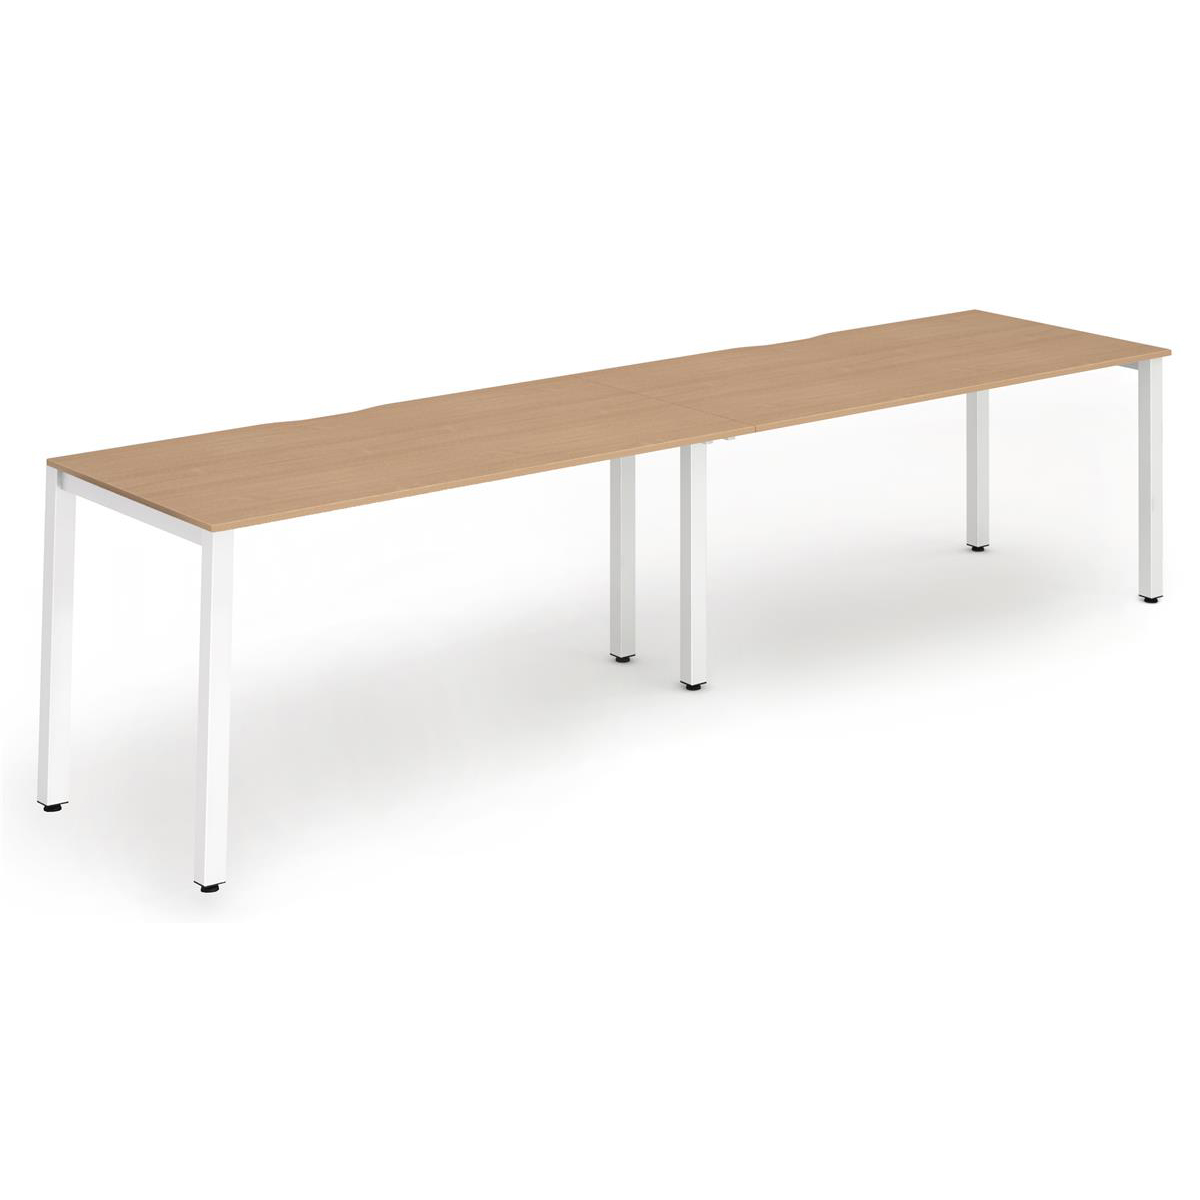 Trexus Bench Desk 2 Person Side to Side Configuration White Leg 3200x800mm Beech Ref BE352